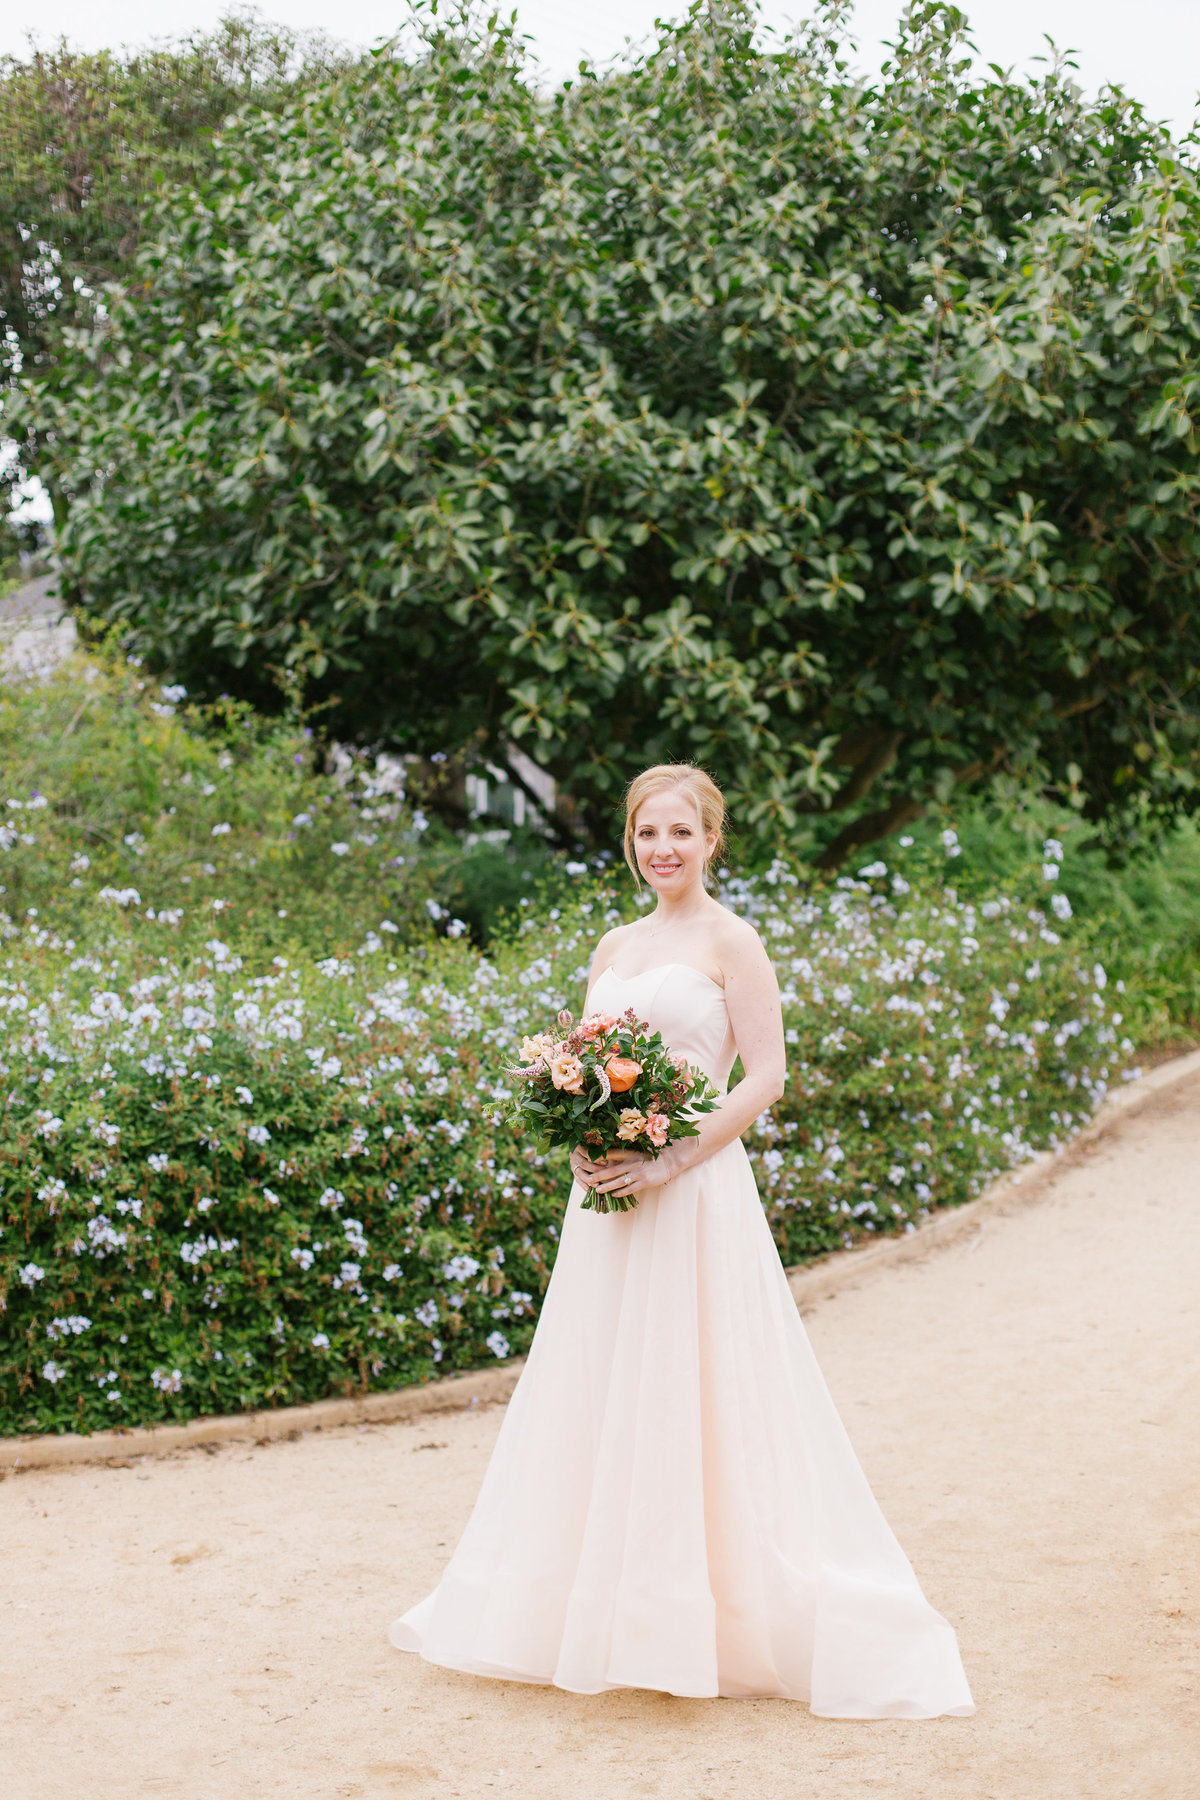 Intimate-Romantic-Santa-Barbara-Wedding-Venue-26